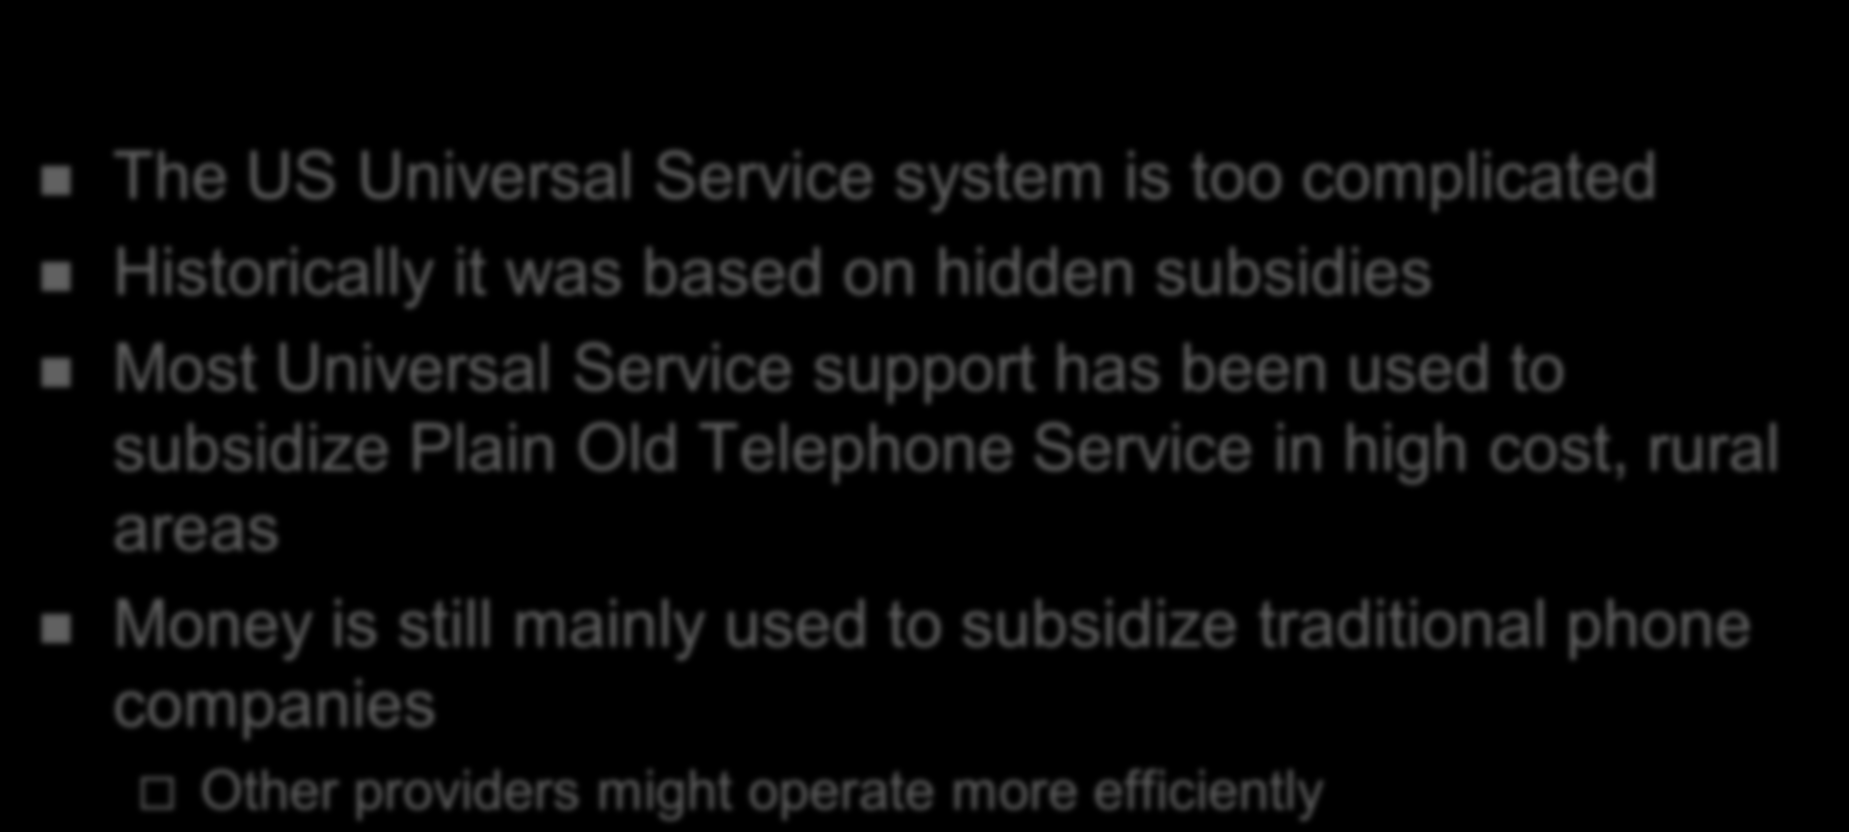 Concluding Thoughts The US Universal Service system is too complicated Historically it was based on hidden subsidies Most Universal Service support has been used to